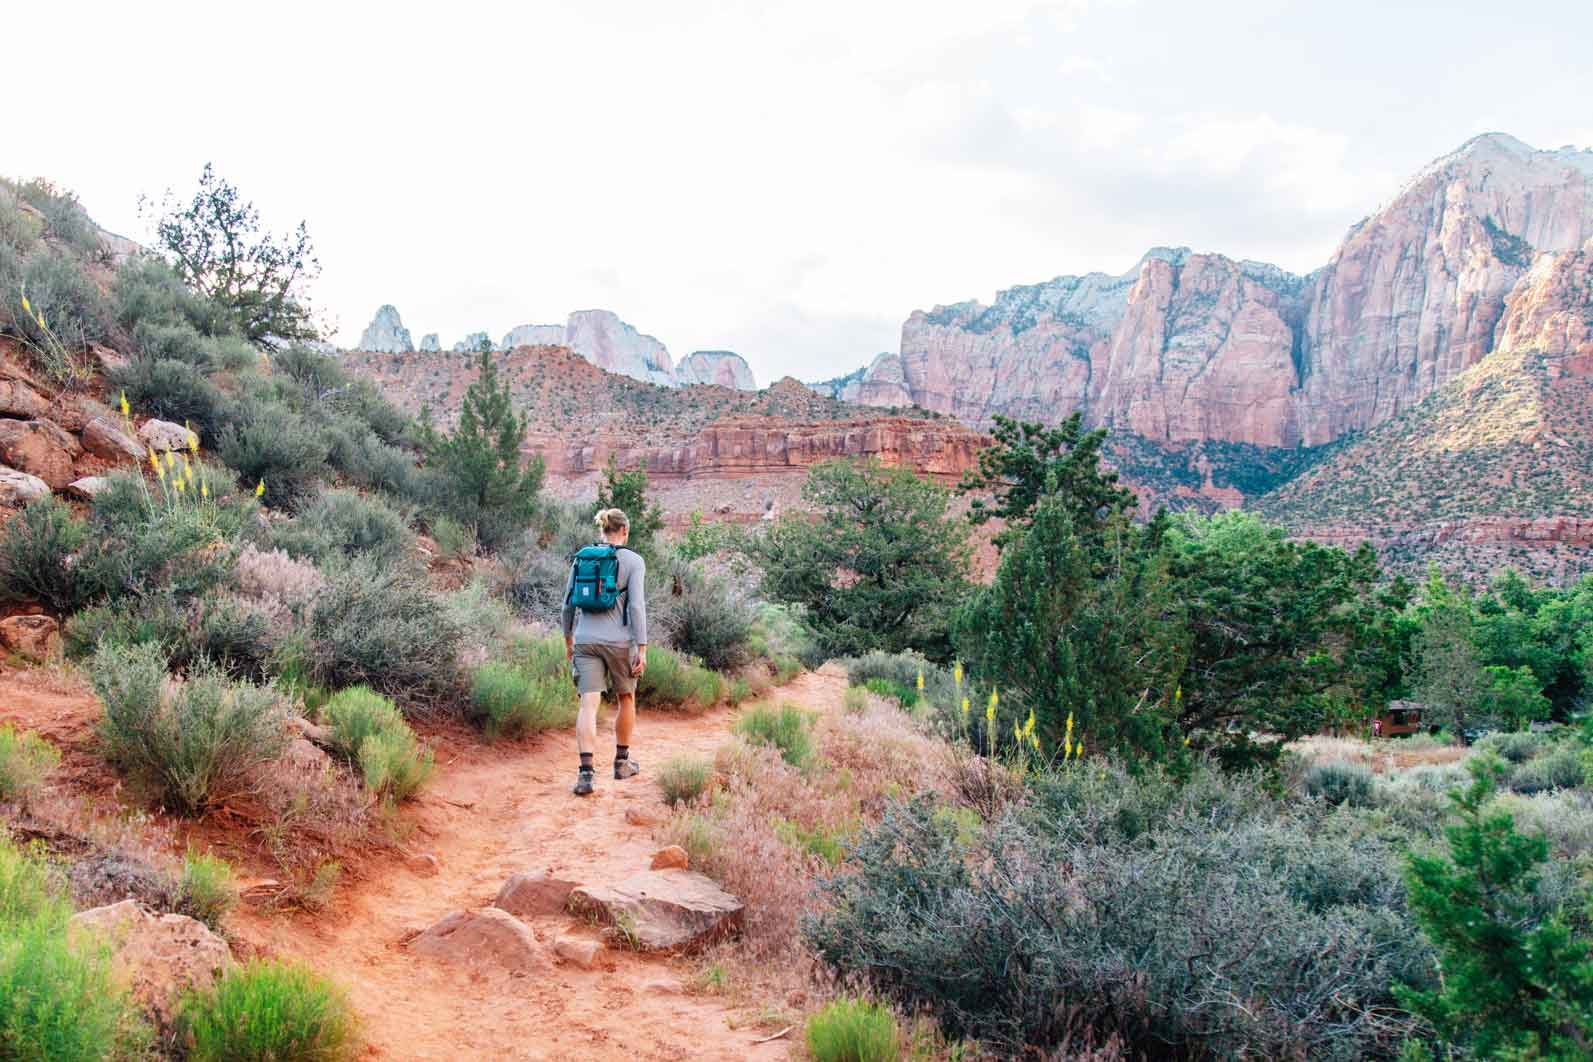 Looking to find some solitude in one of the most popular US National Parks? Check out these 4 hikes in Zion, where we discovered iconic views without the crowds.